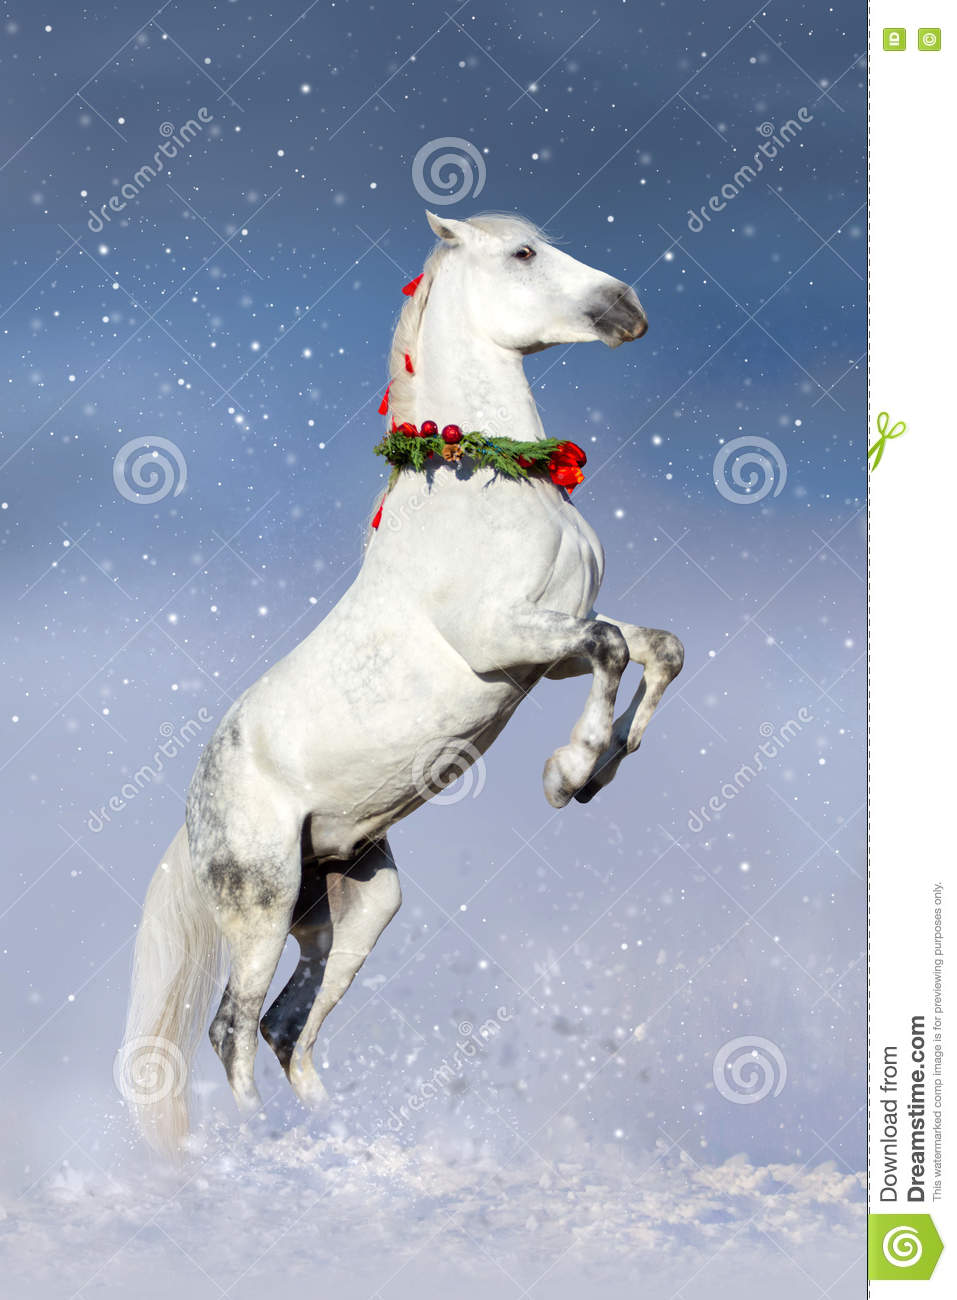 White Horse Rearing Up In Christmas Wreath Stock Photo Image Of Strong Animal 77698854